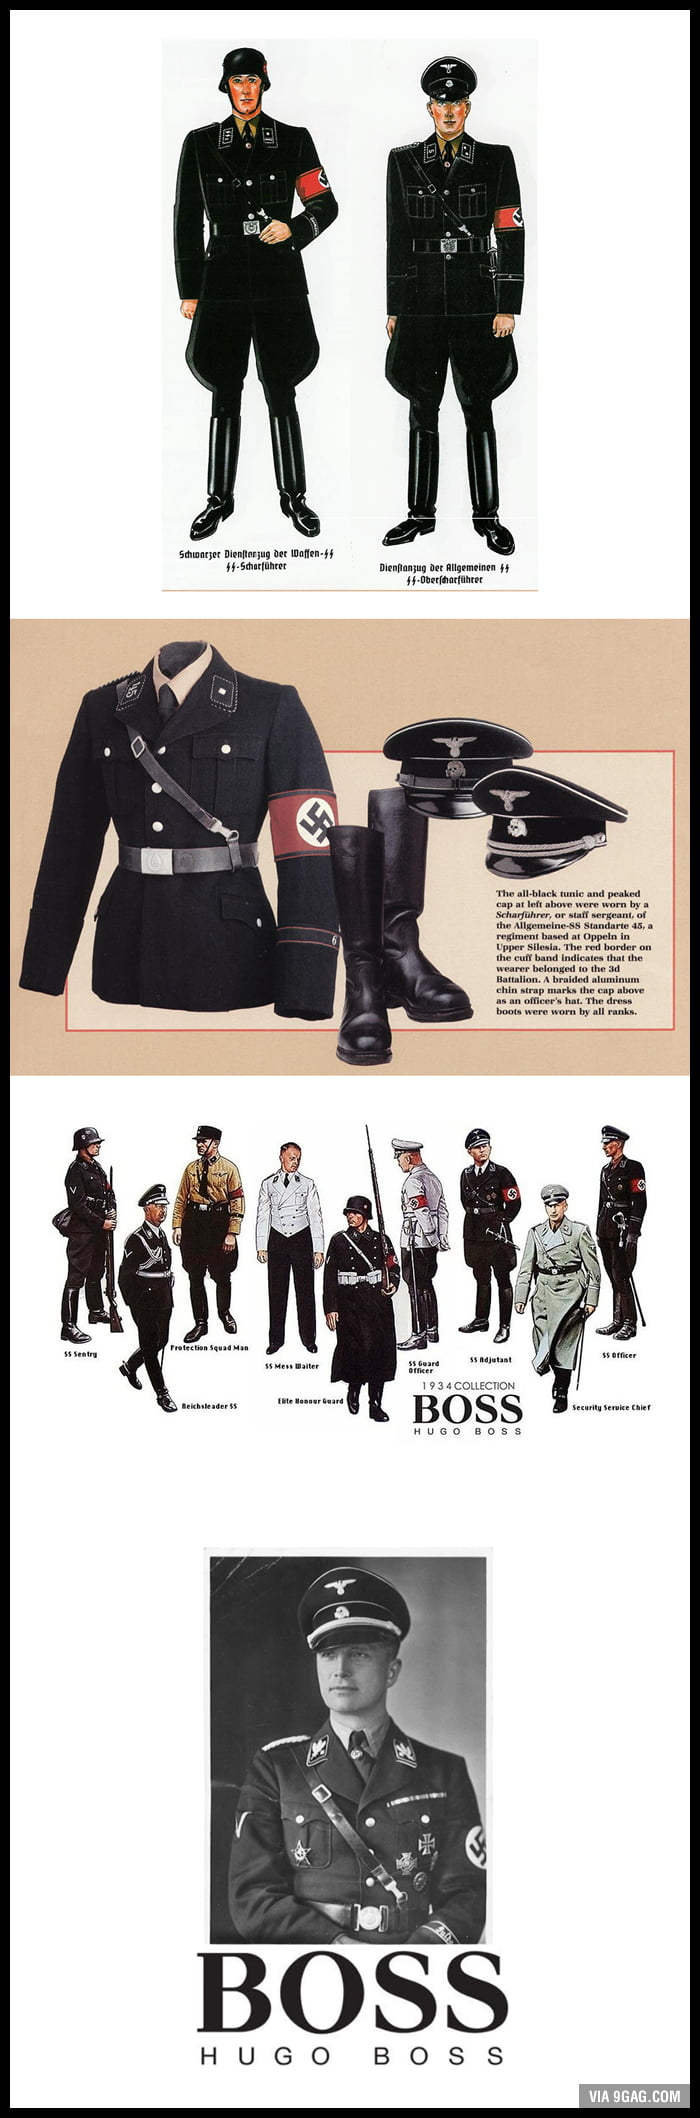 hugo boss the designer for the nazi uniforms in the 30s